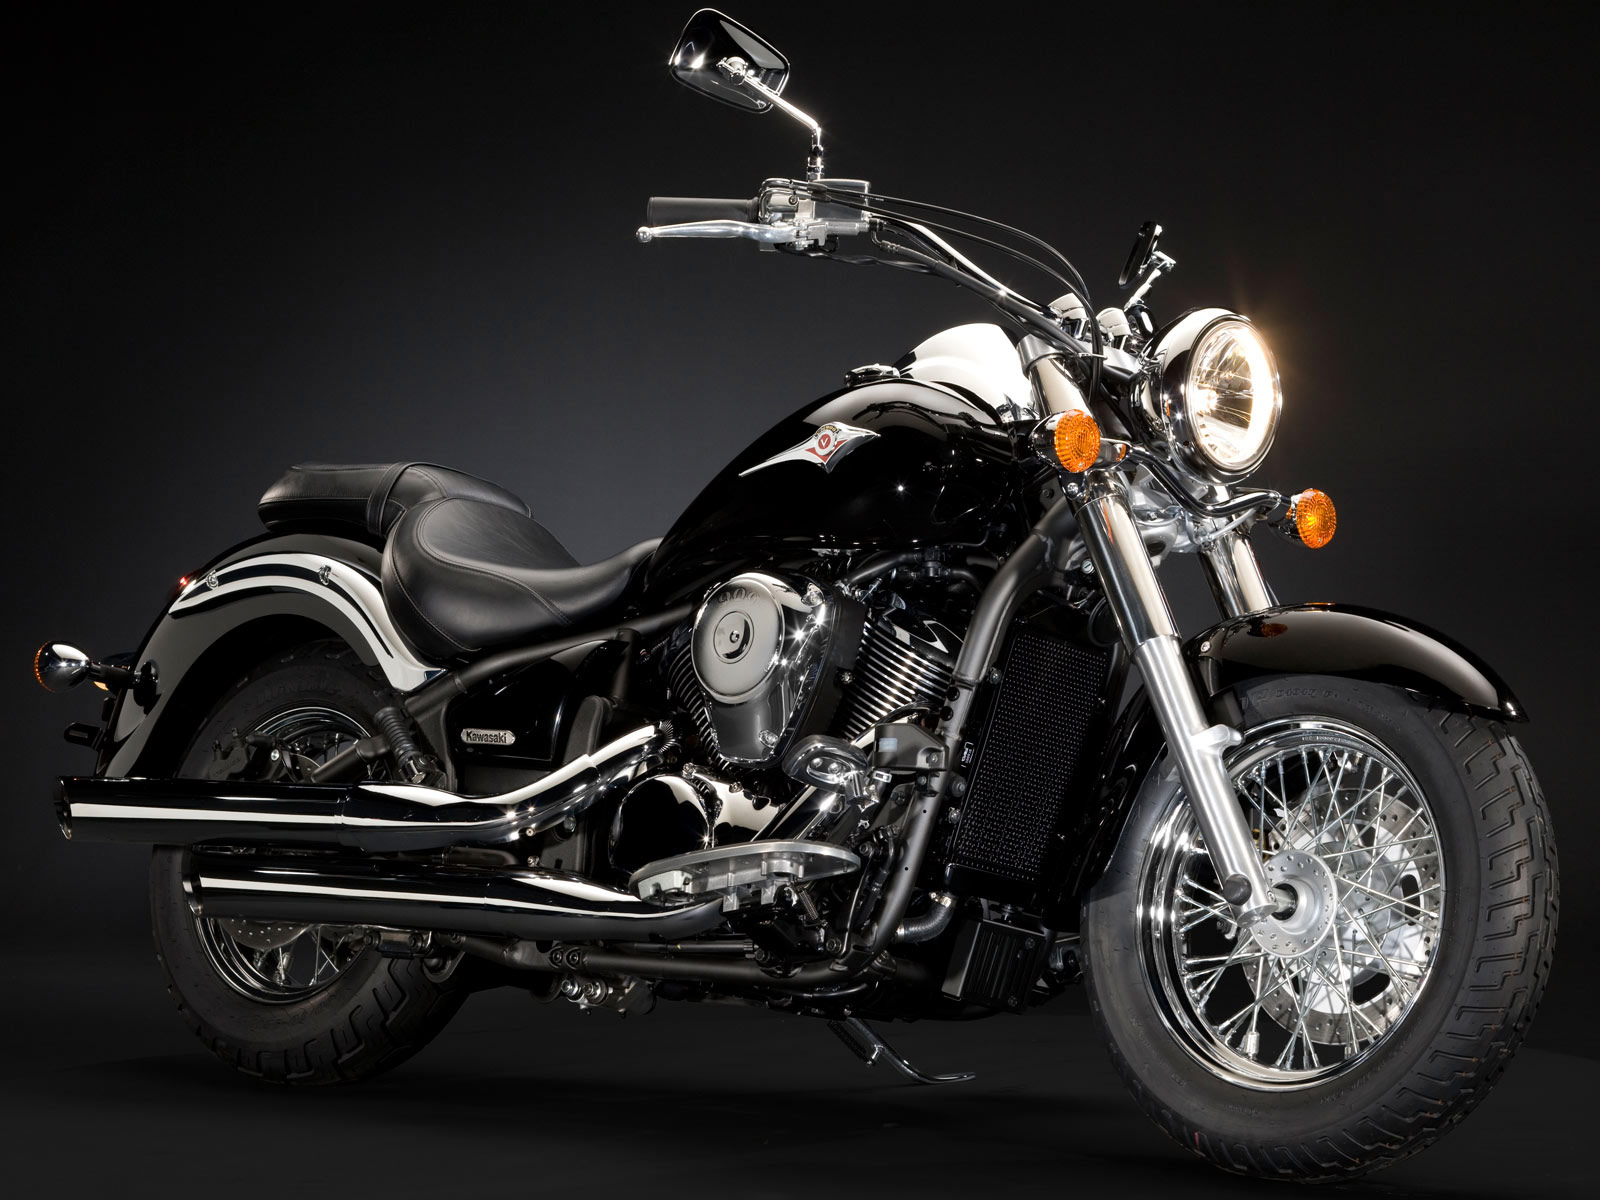 Kawasaki VN900 Classic Motorcycle Preview and Specifications 1600x1200